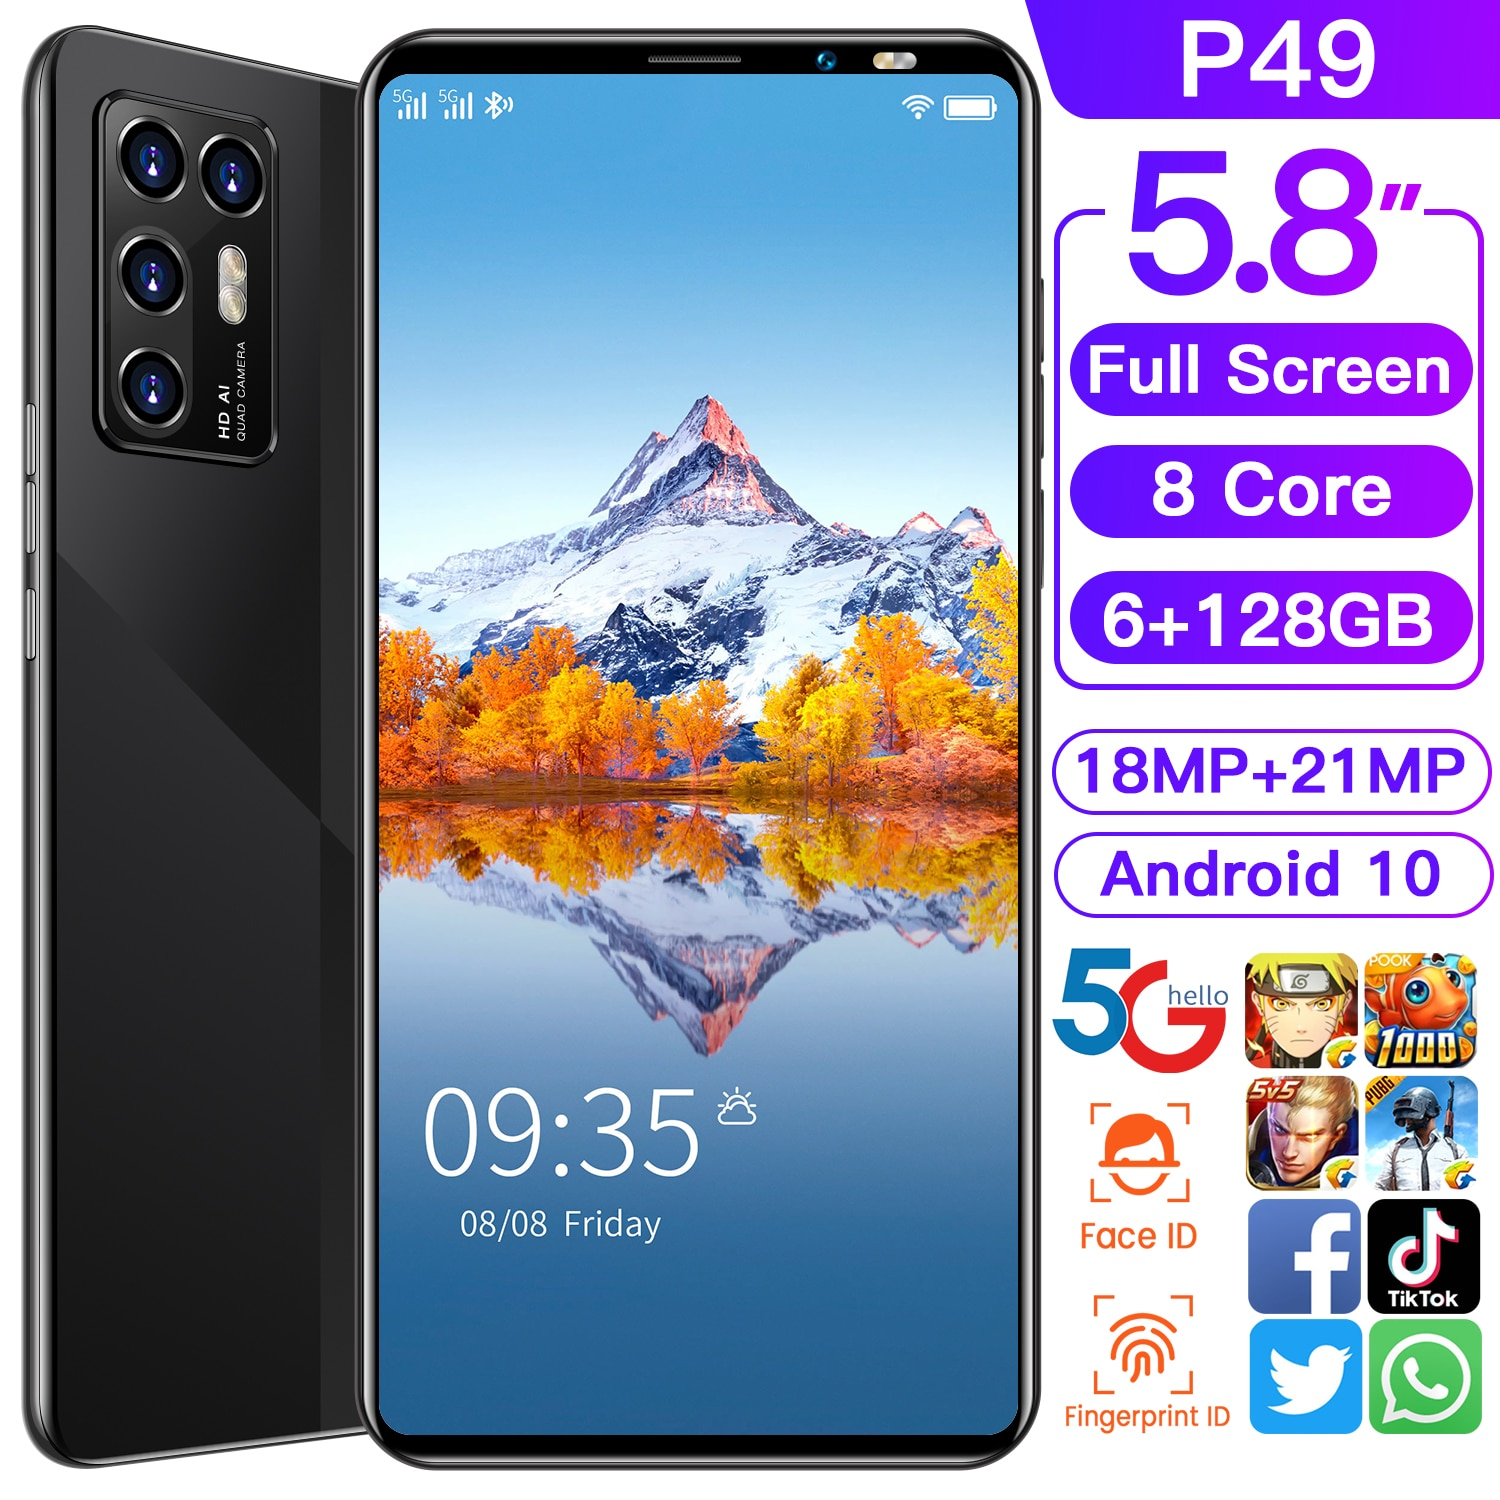 Global Version Galxy P49 Andriod 10 5.8 Inch HD 8Core Smartphone ROM 6GB RAM 128GB Dual SIM Face Fin